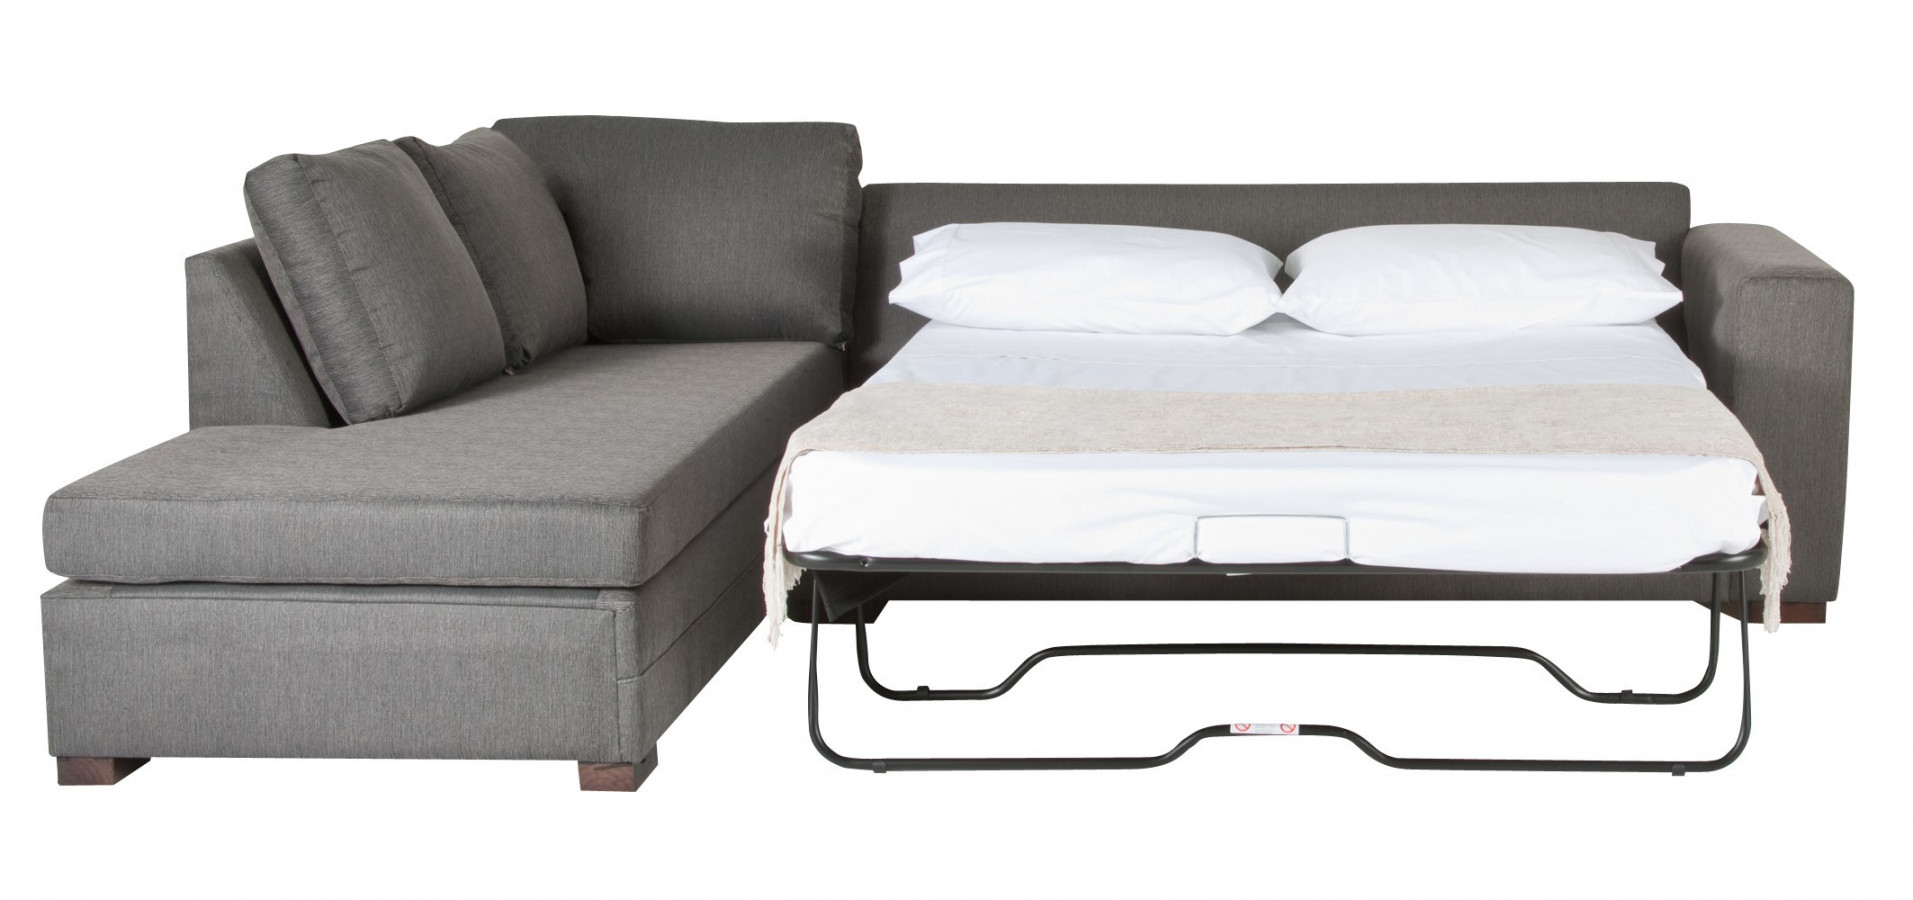 sofa bed pull out sofas : pull out couch mattress fold out sofa sofa bed mattress YZQJGOK